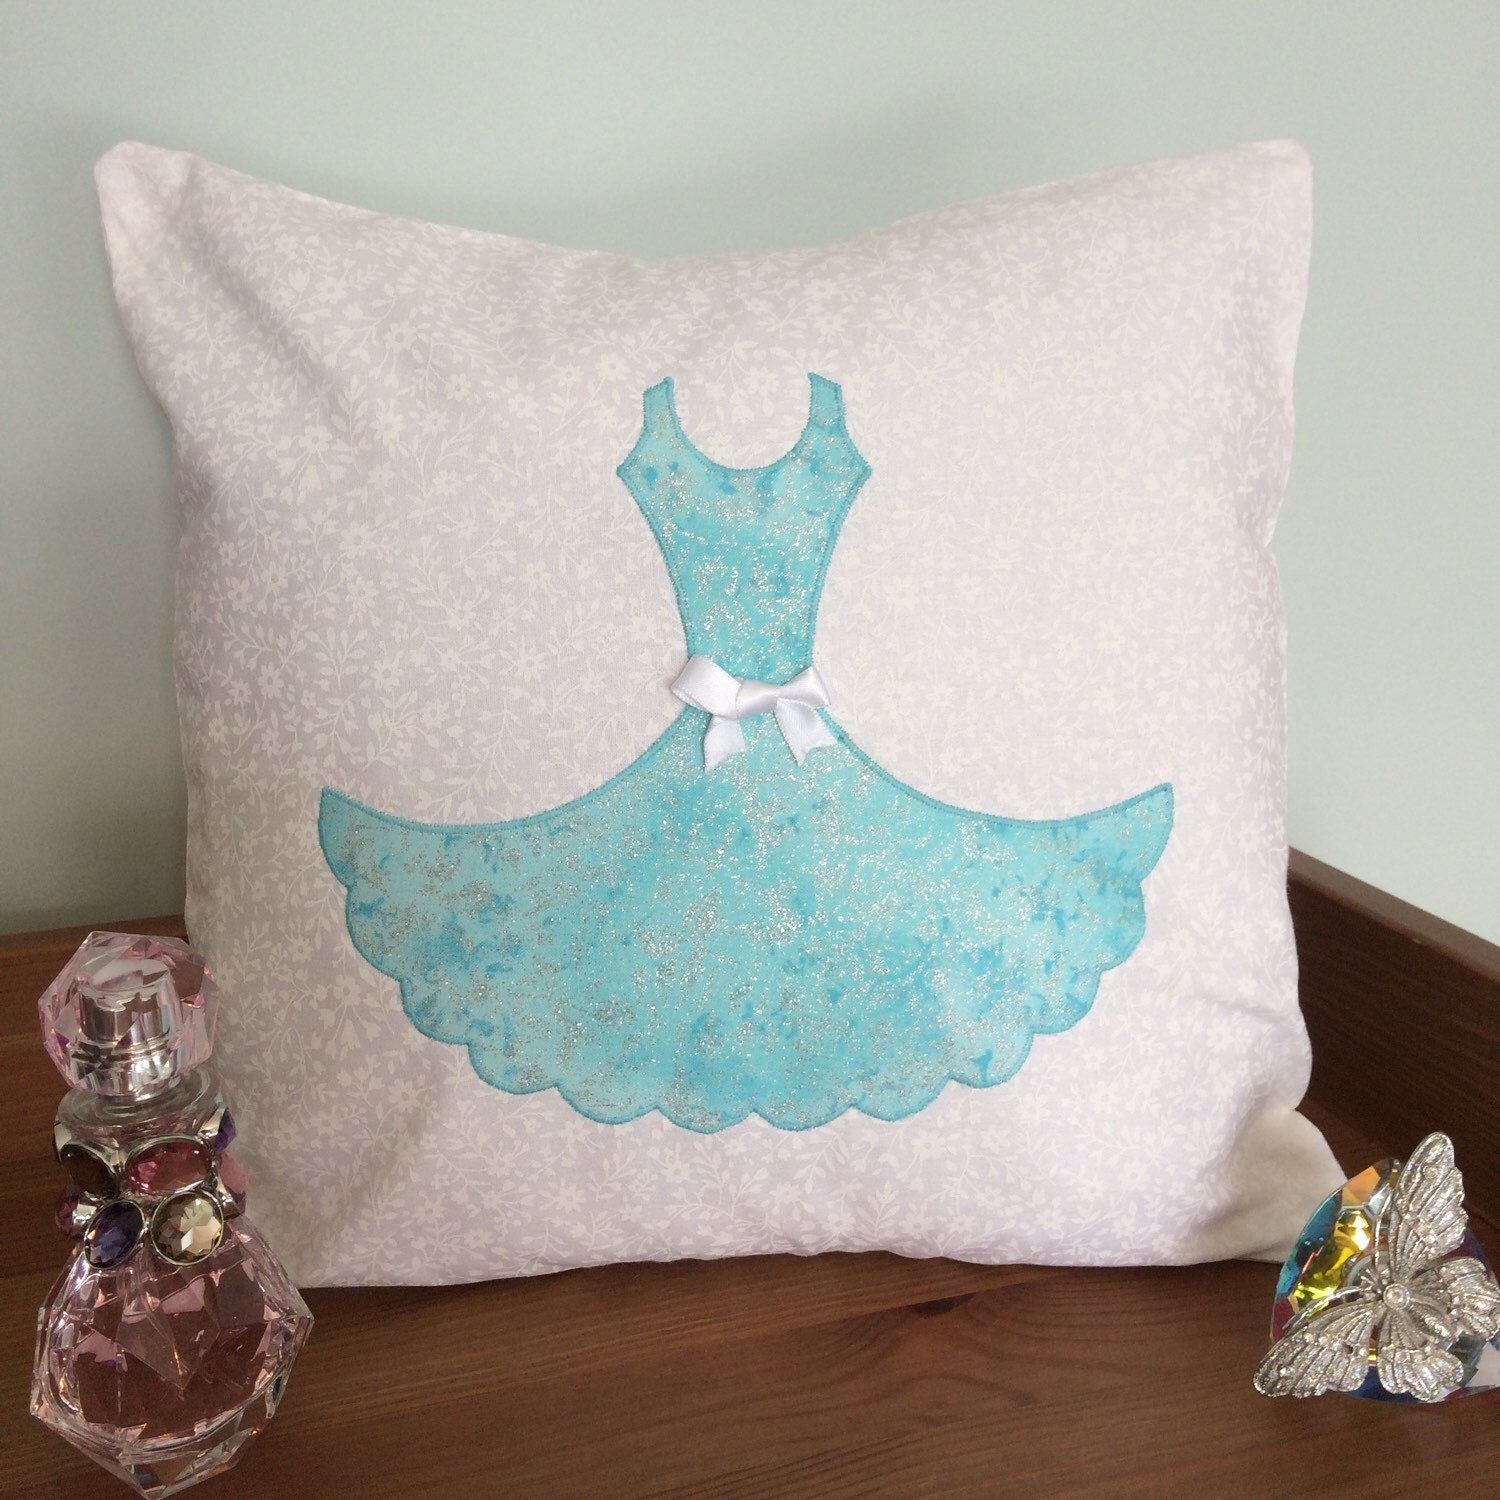 Dress Cushion kit, Make your own dress cushion cover, DIY cushion kit, Dress